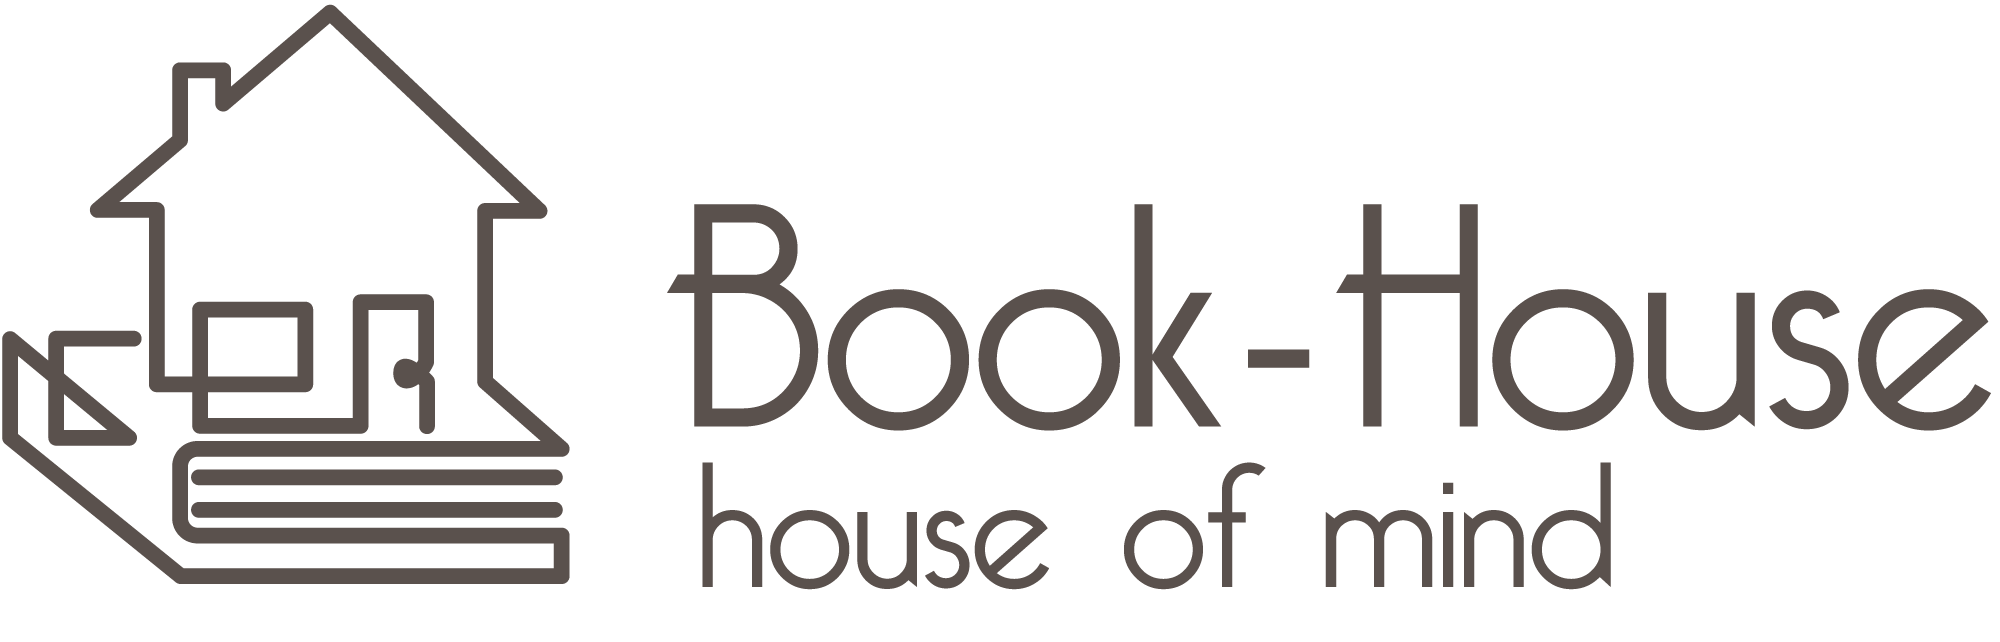 book-house